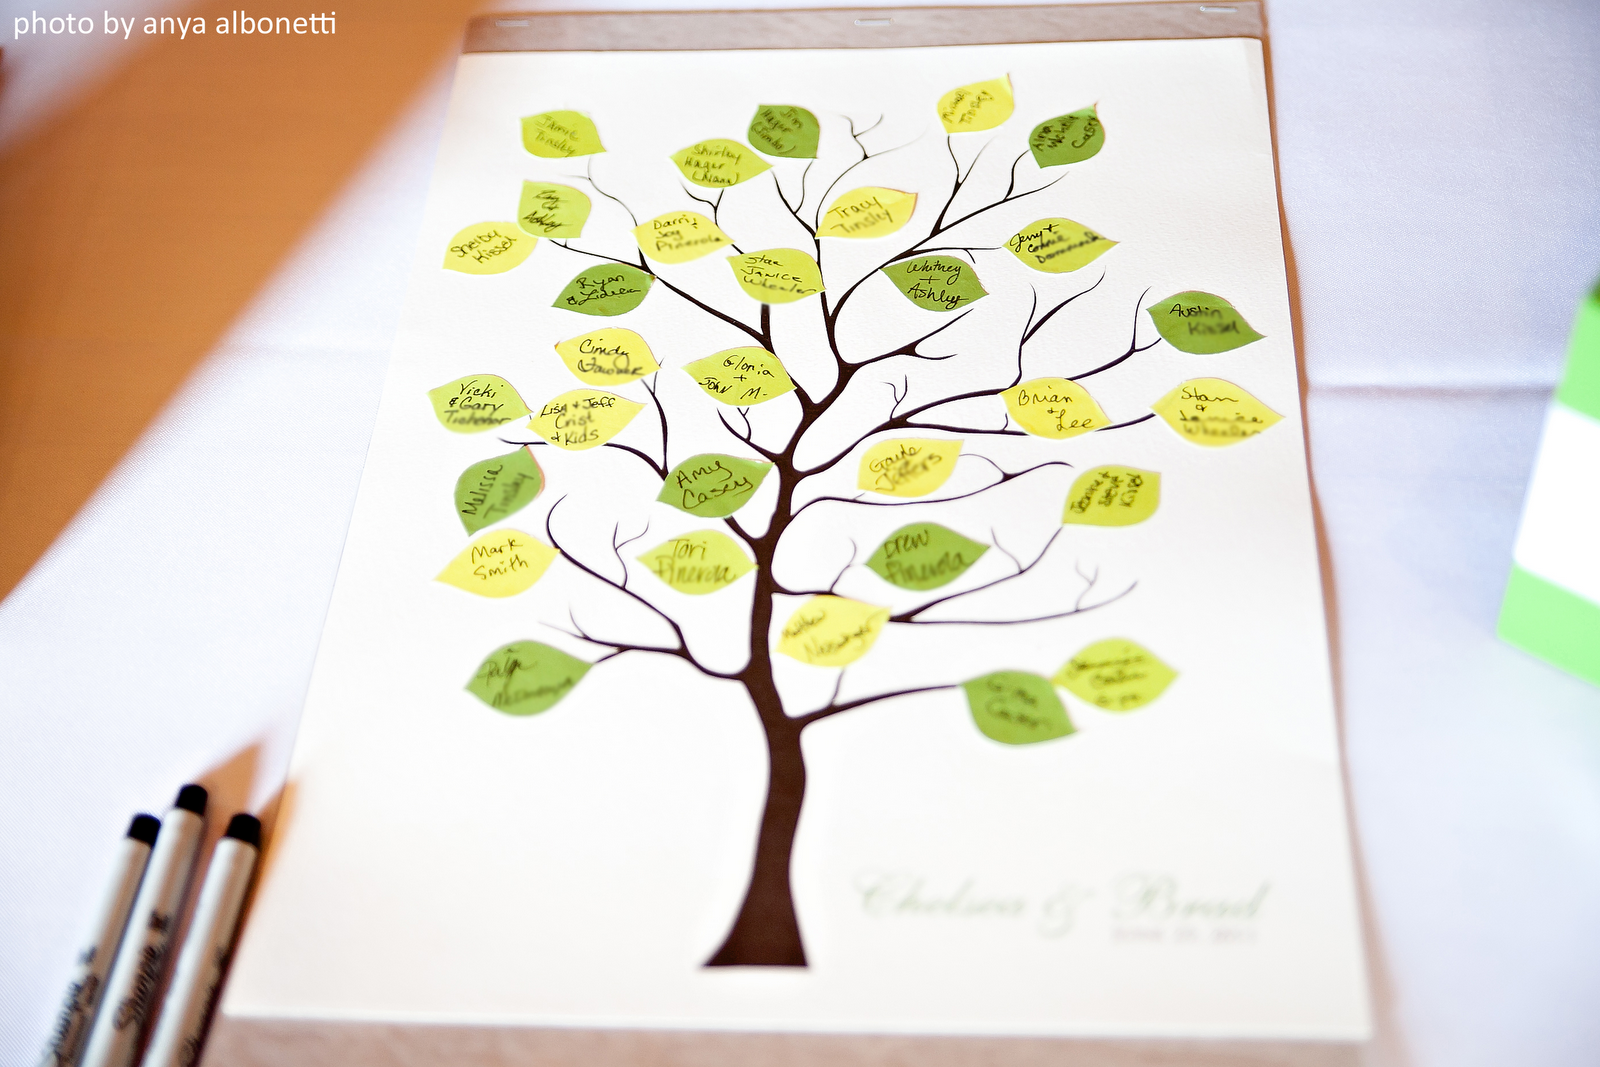 Wedding Guest Book Tree Png 1 600 067 Pixels